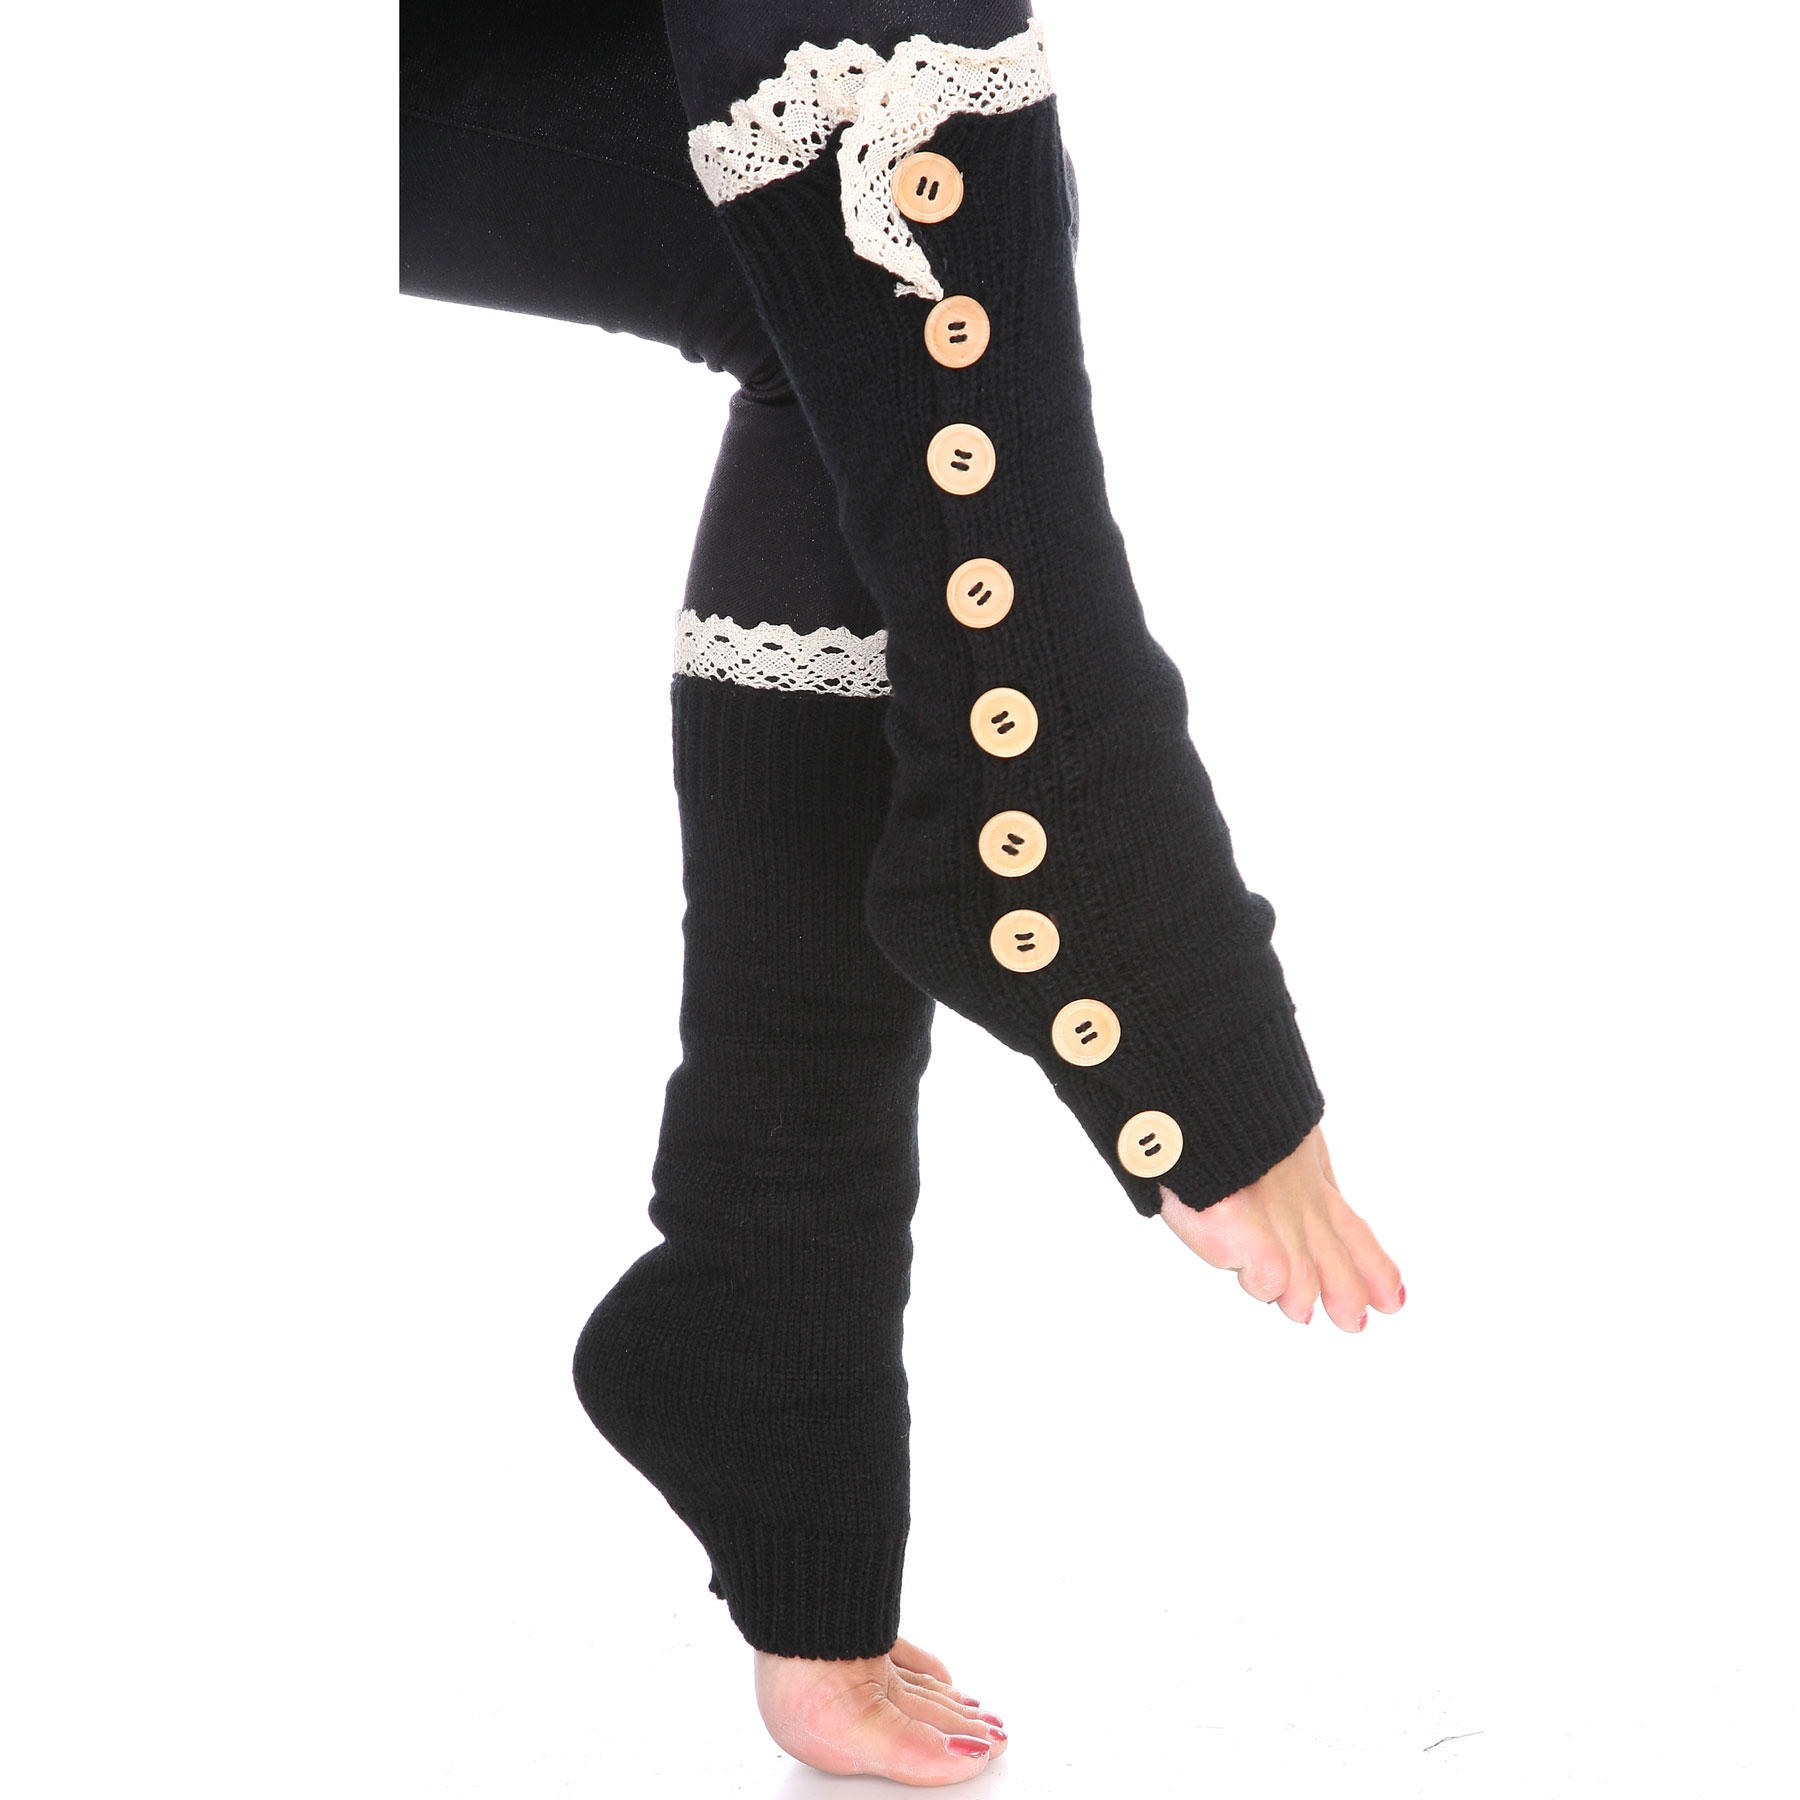 C Nine Button Leg Warmers 264x111